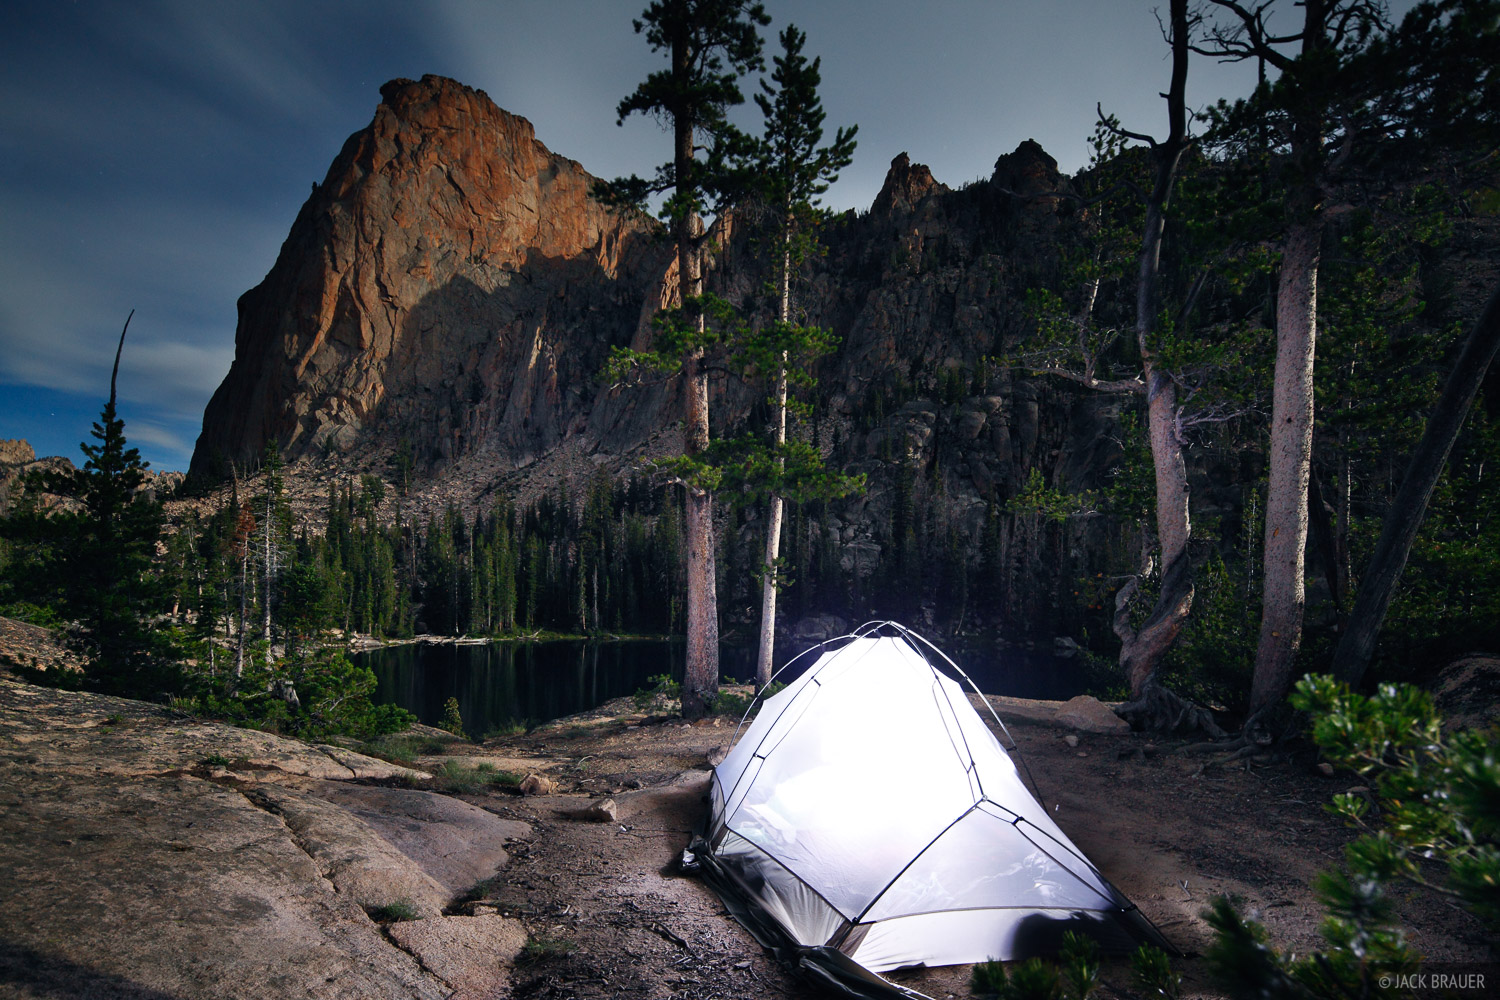 Elephant's Perch, moonlight, tent, Sawtooth Mountains, Idaho, photo